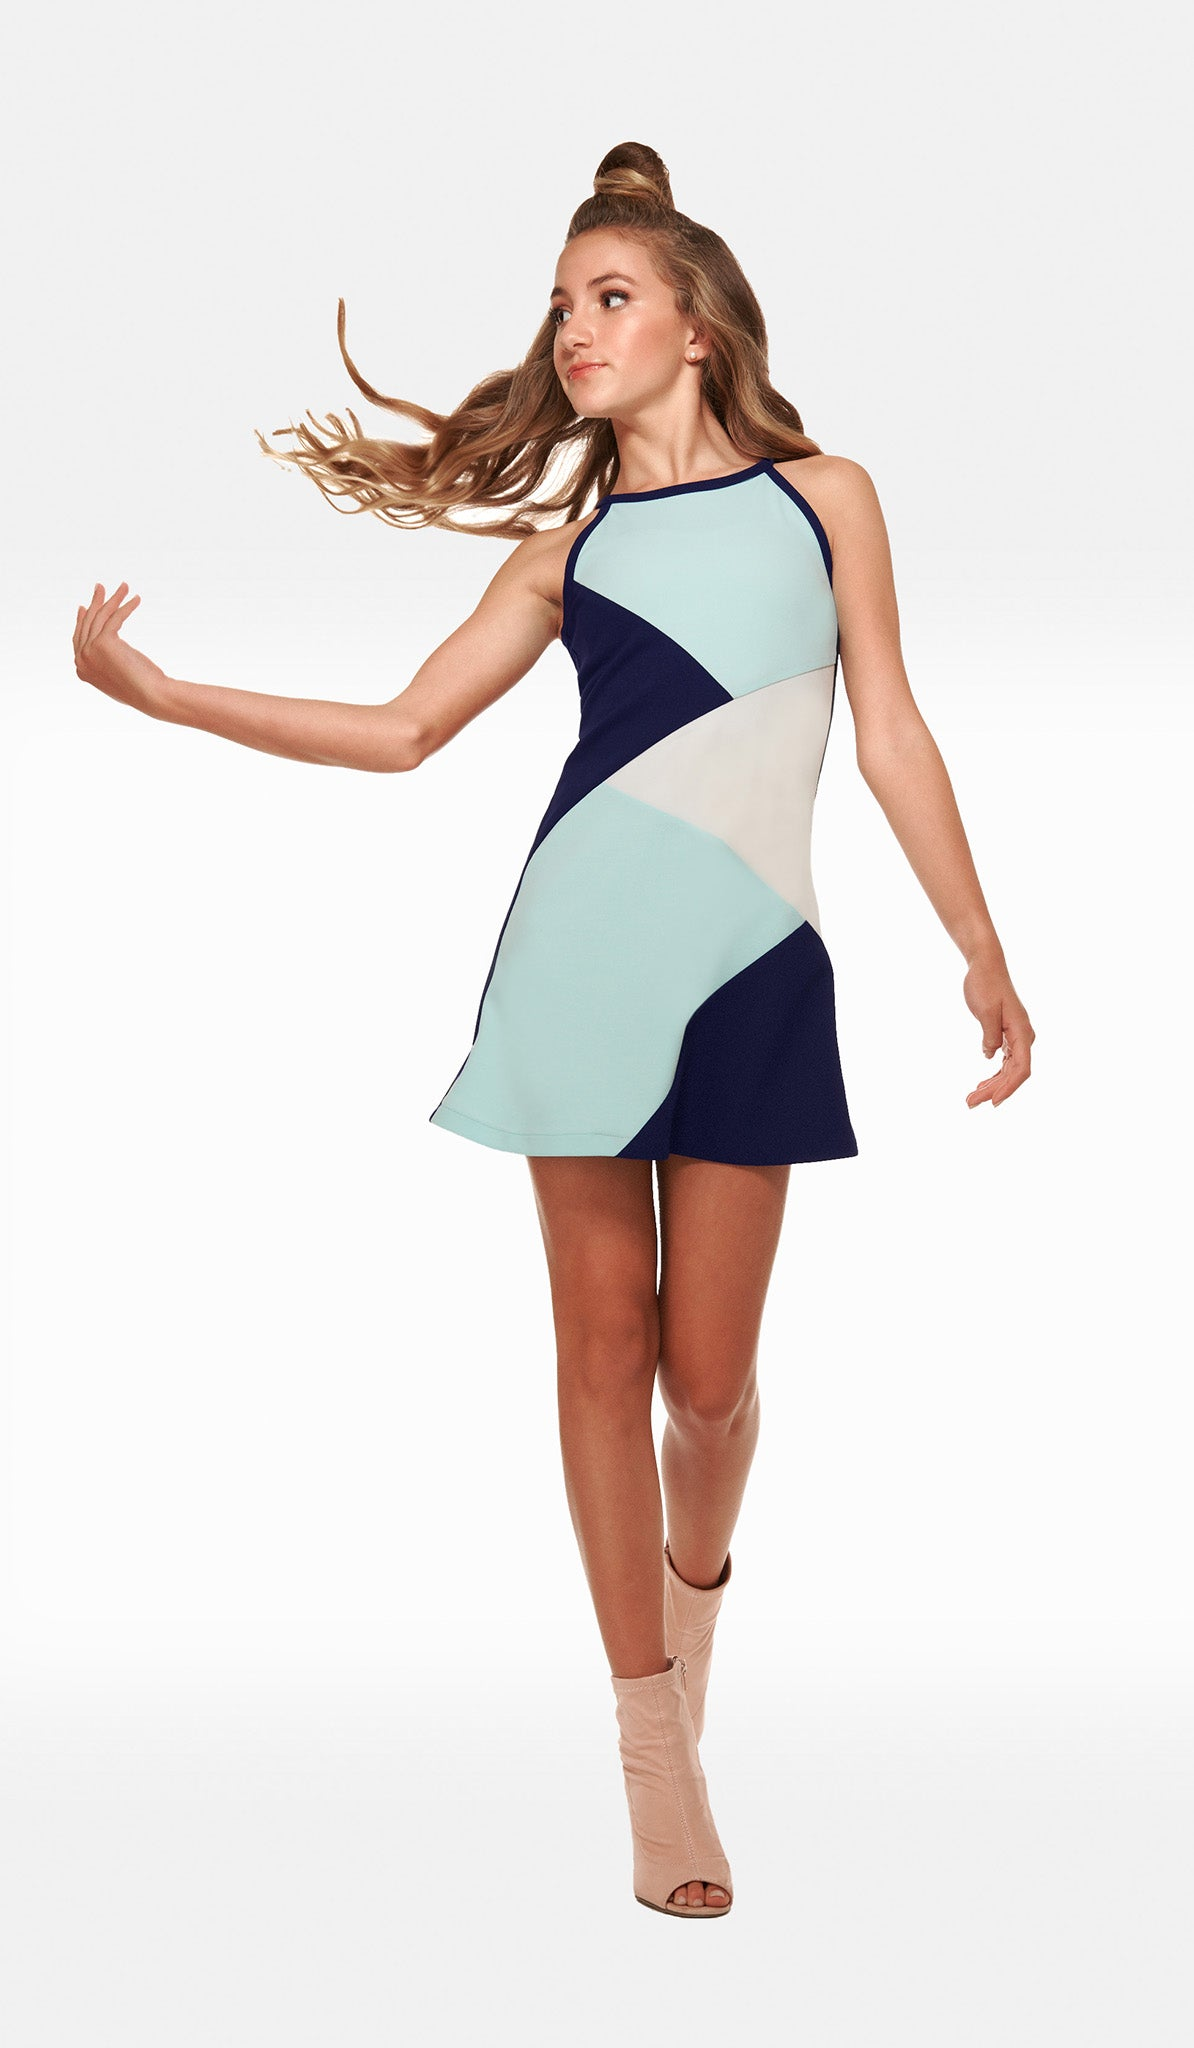 The Sally Miller South Beach Dress - Modern Multi color block stretch crepe georgette dress with button